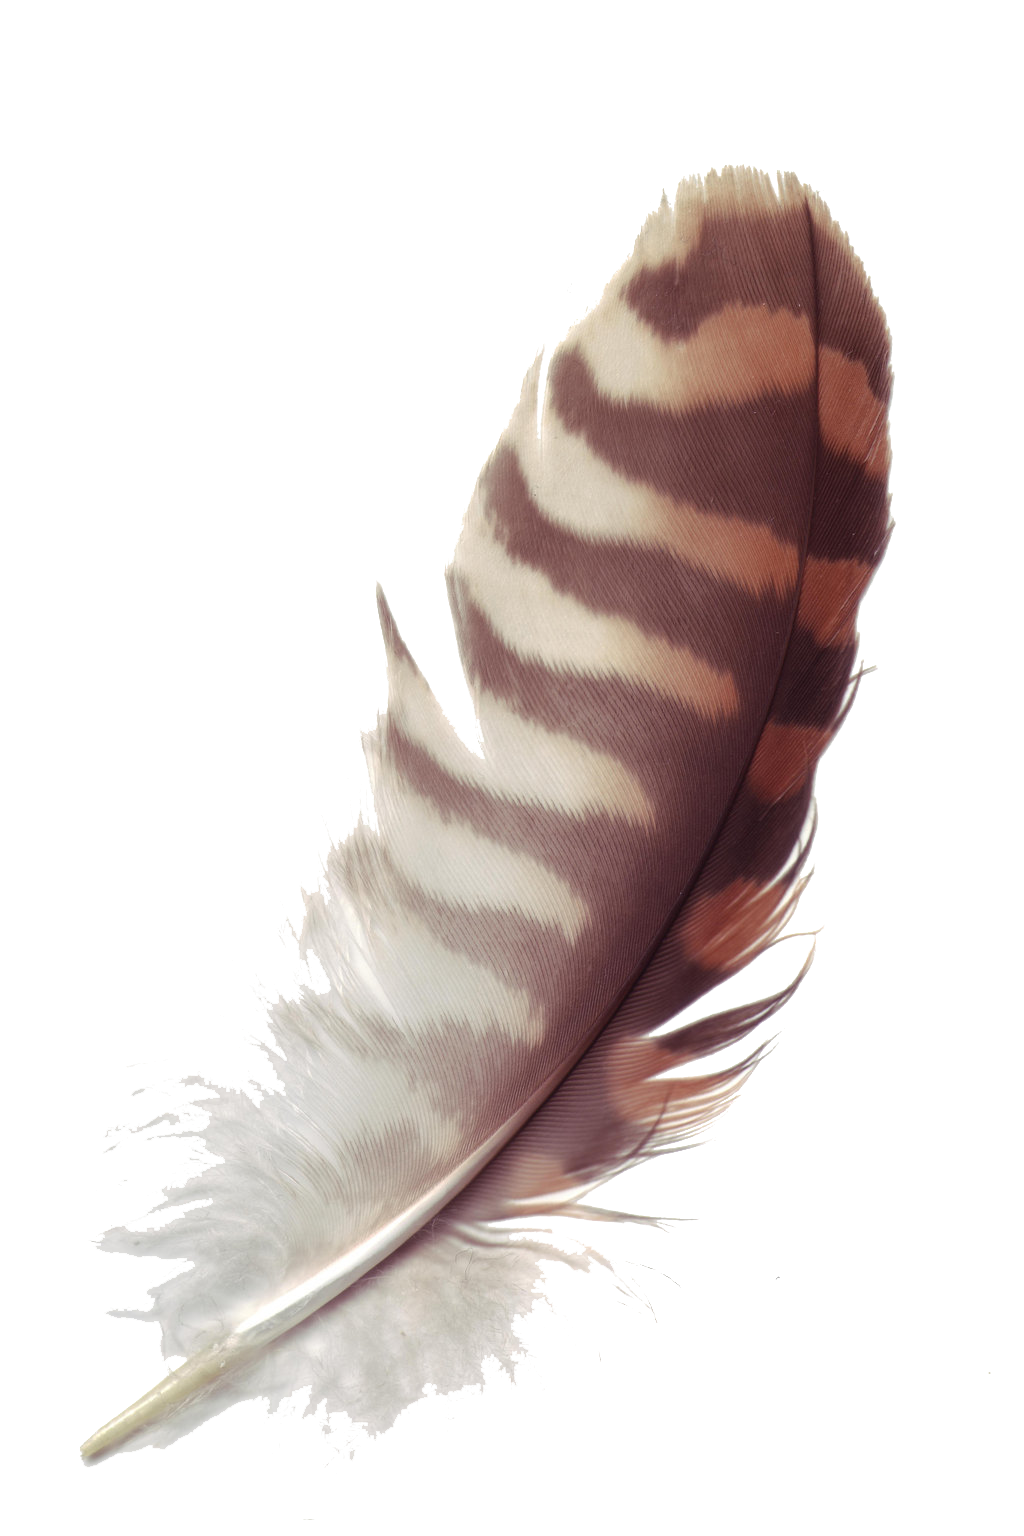 Feather clipart brown. Png transparent images all